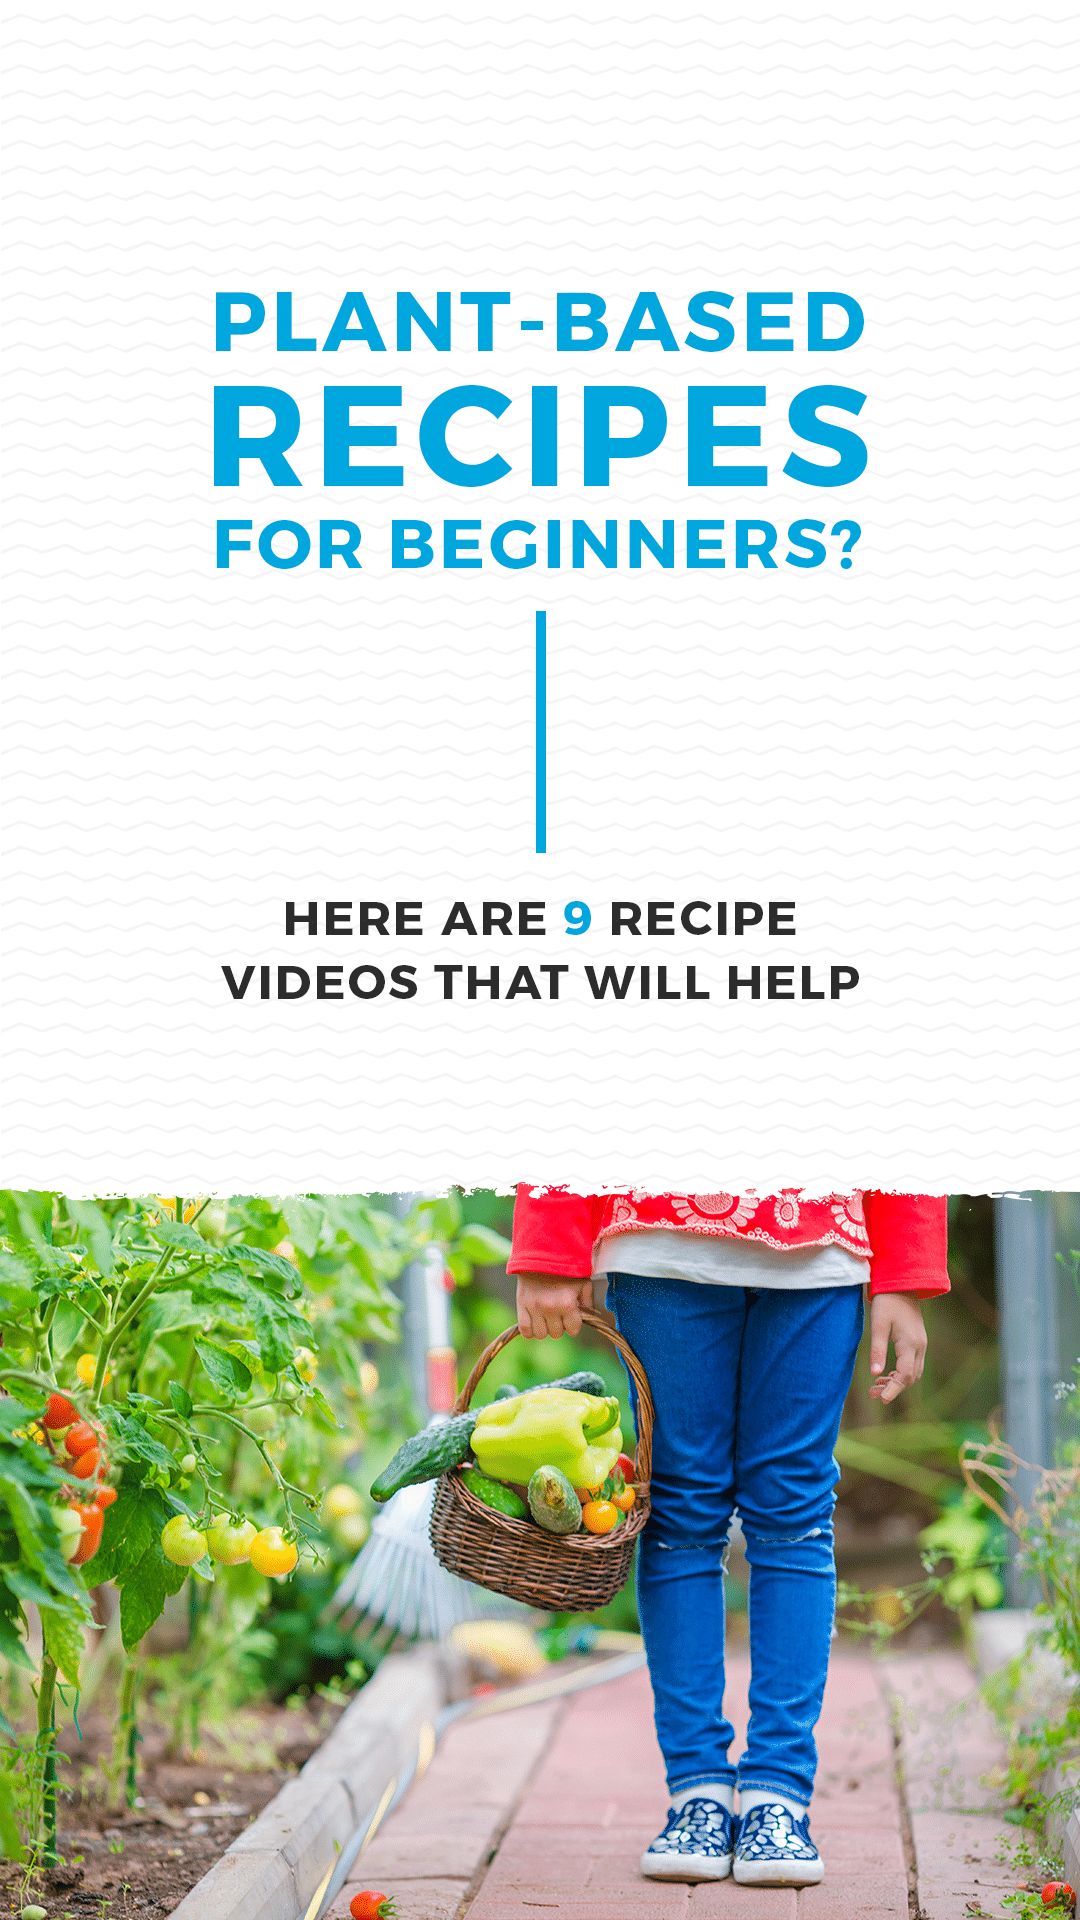 Plant-Based Recipes for Beginners? Here Are 9 Recipe Videos That Will Help